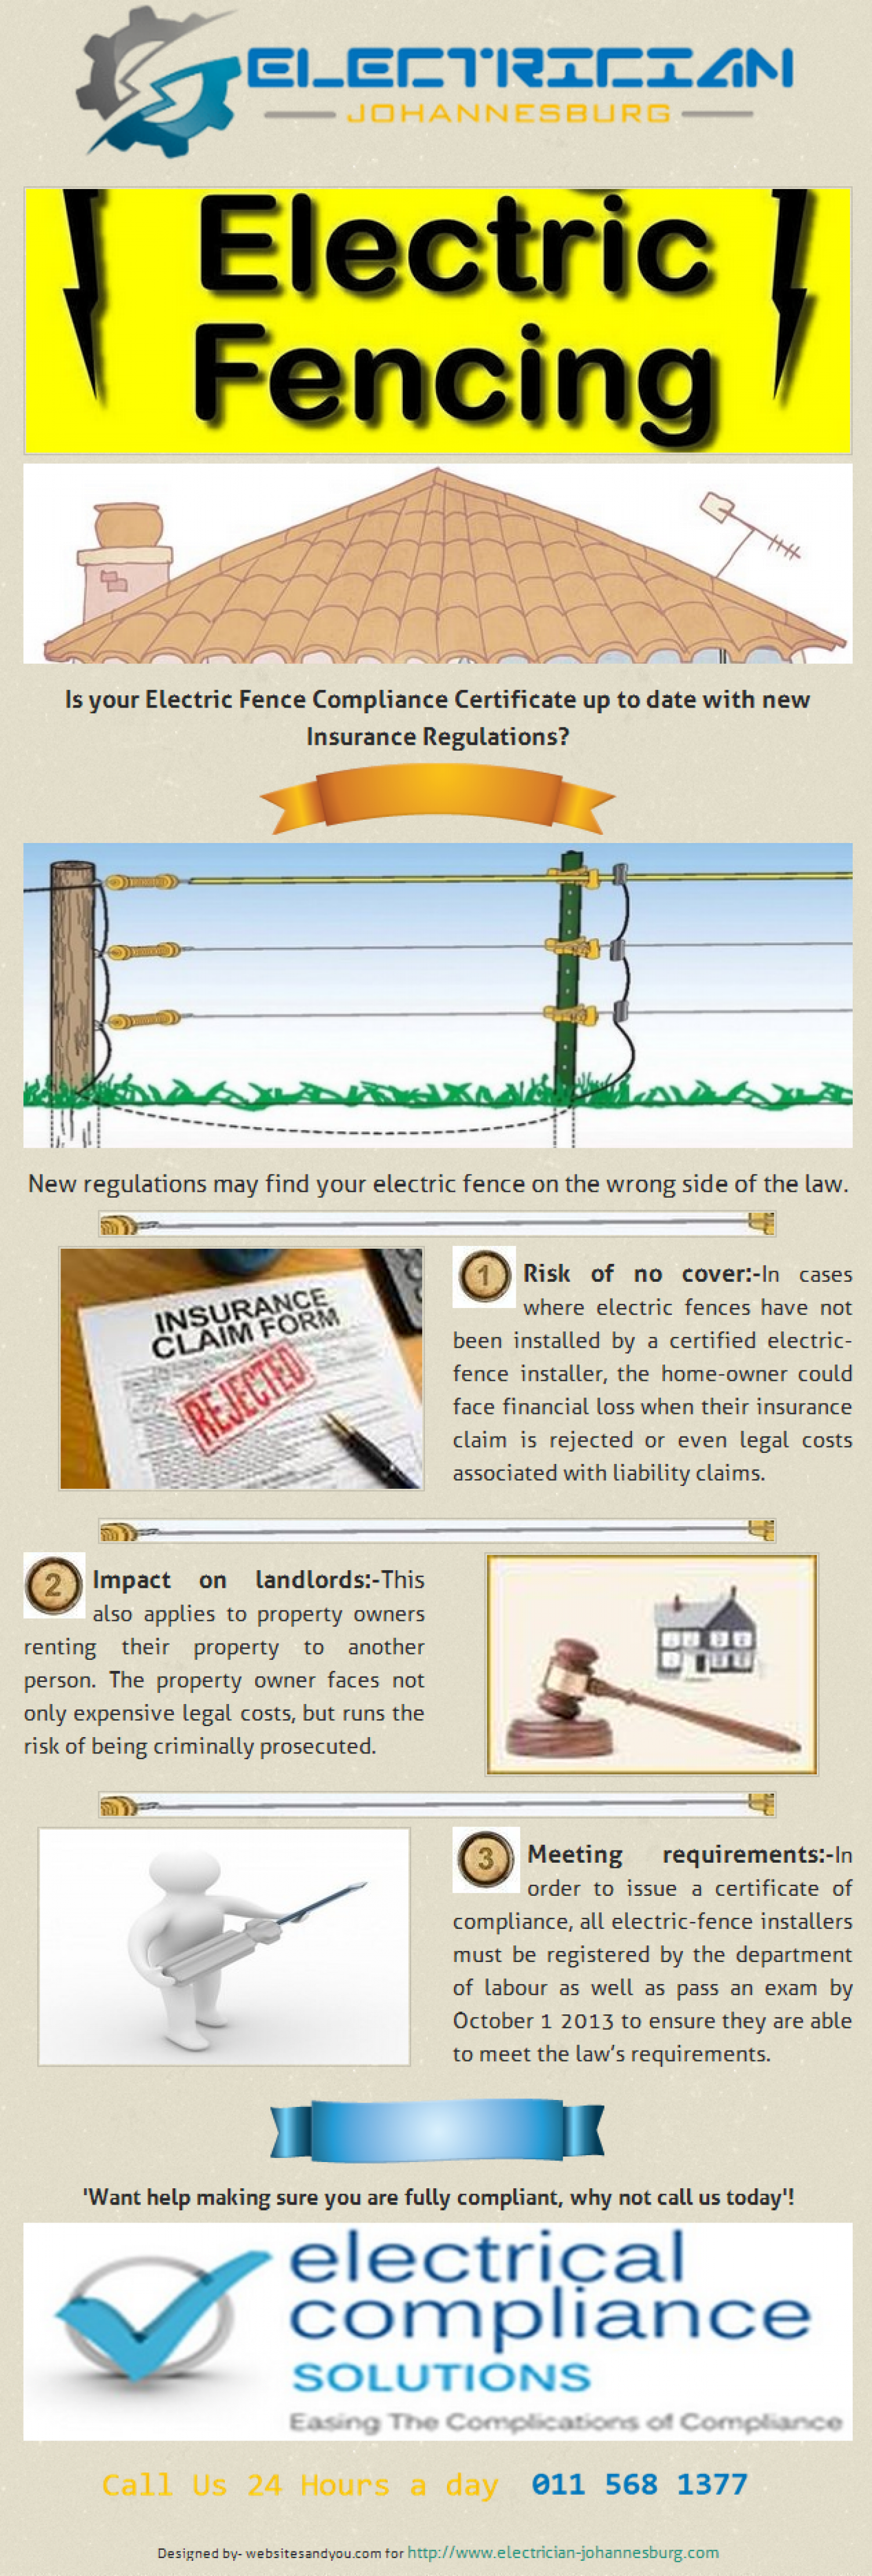 Thinking of Installing Electric Fencing - Things you Must know Infographic